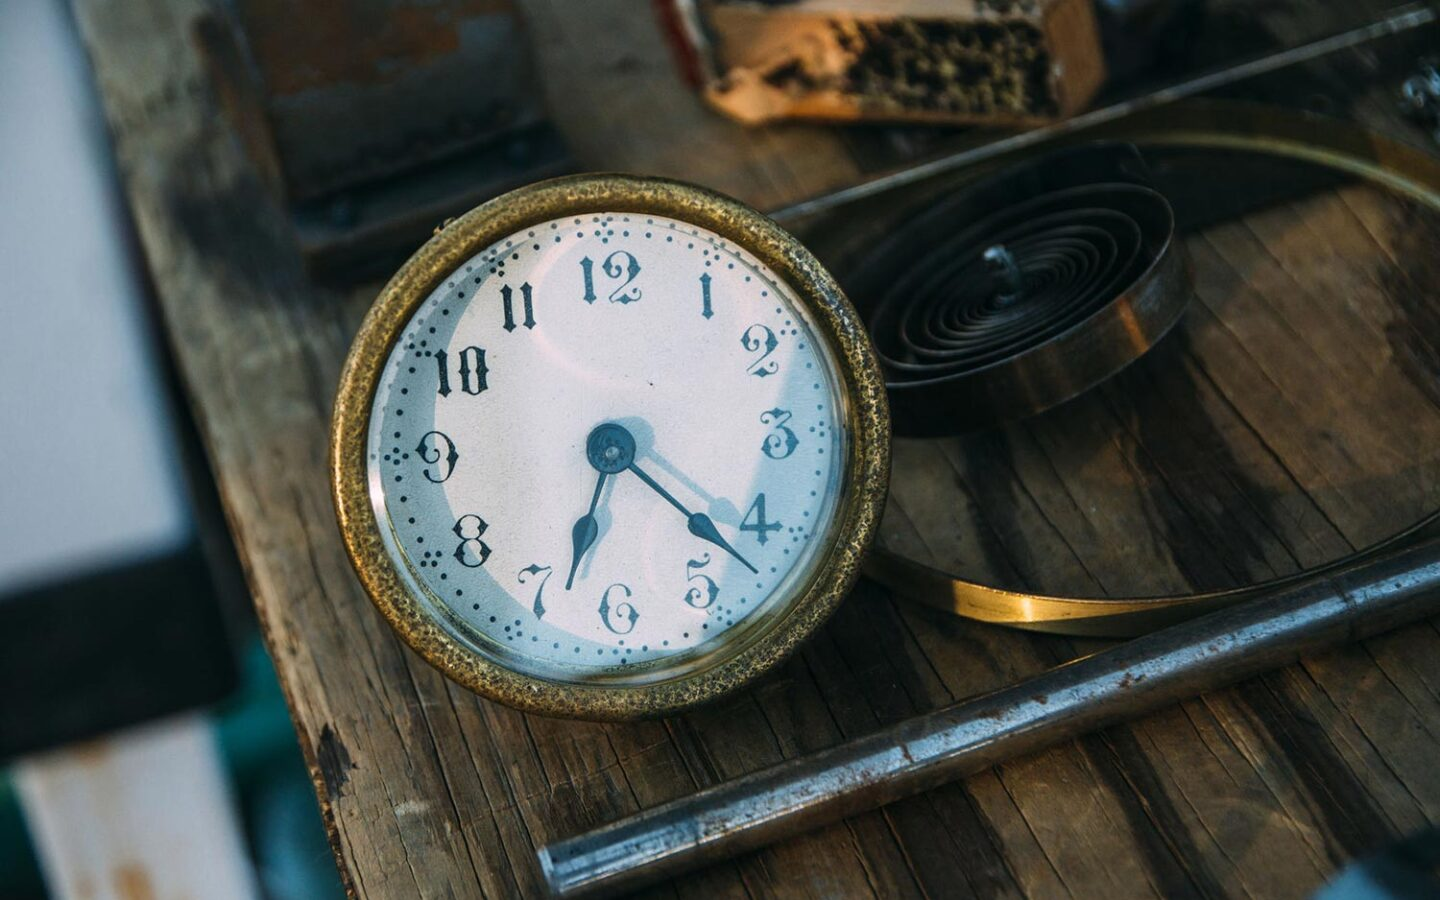 old watch sitting on wooden table